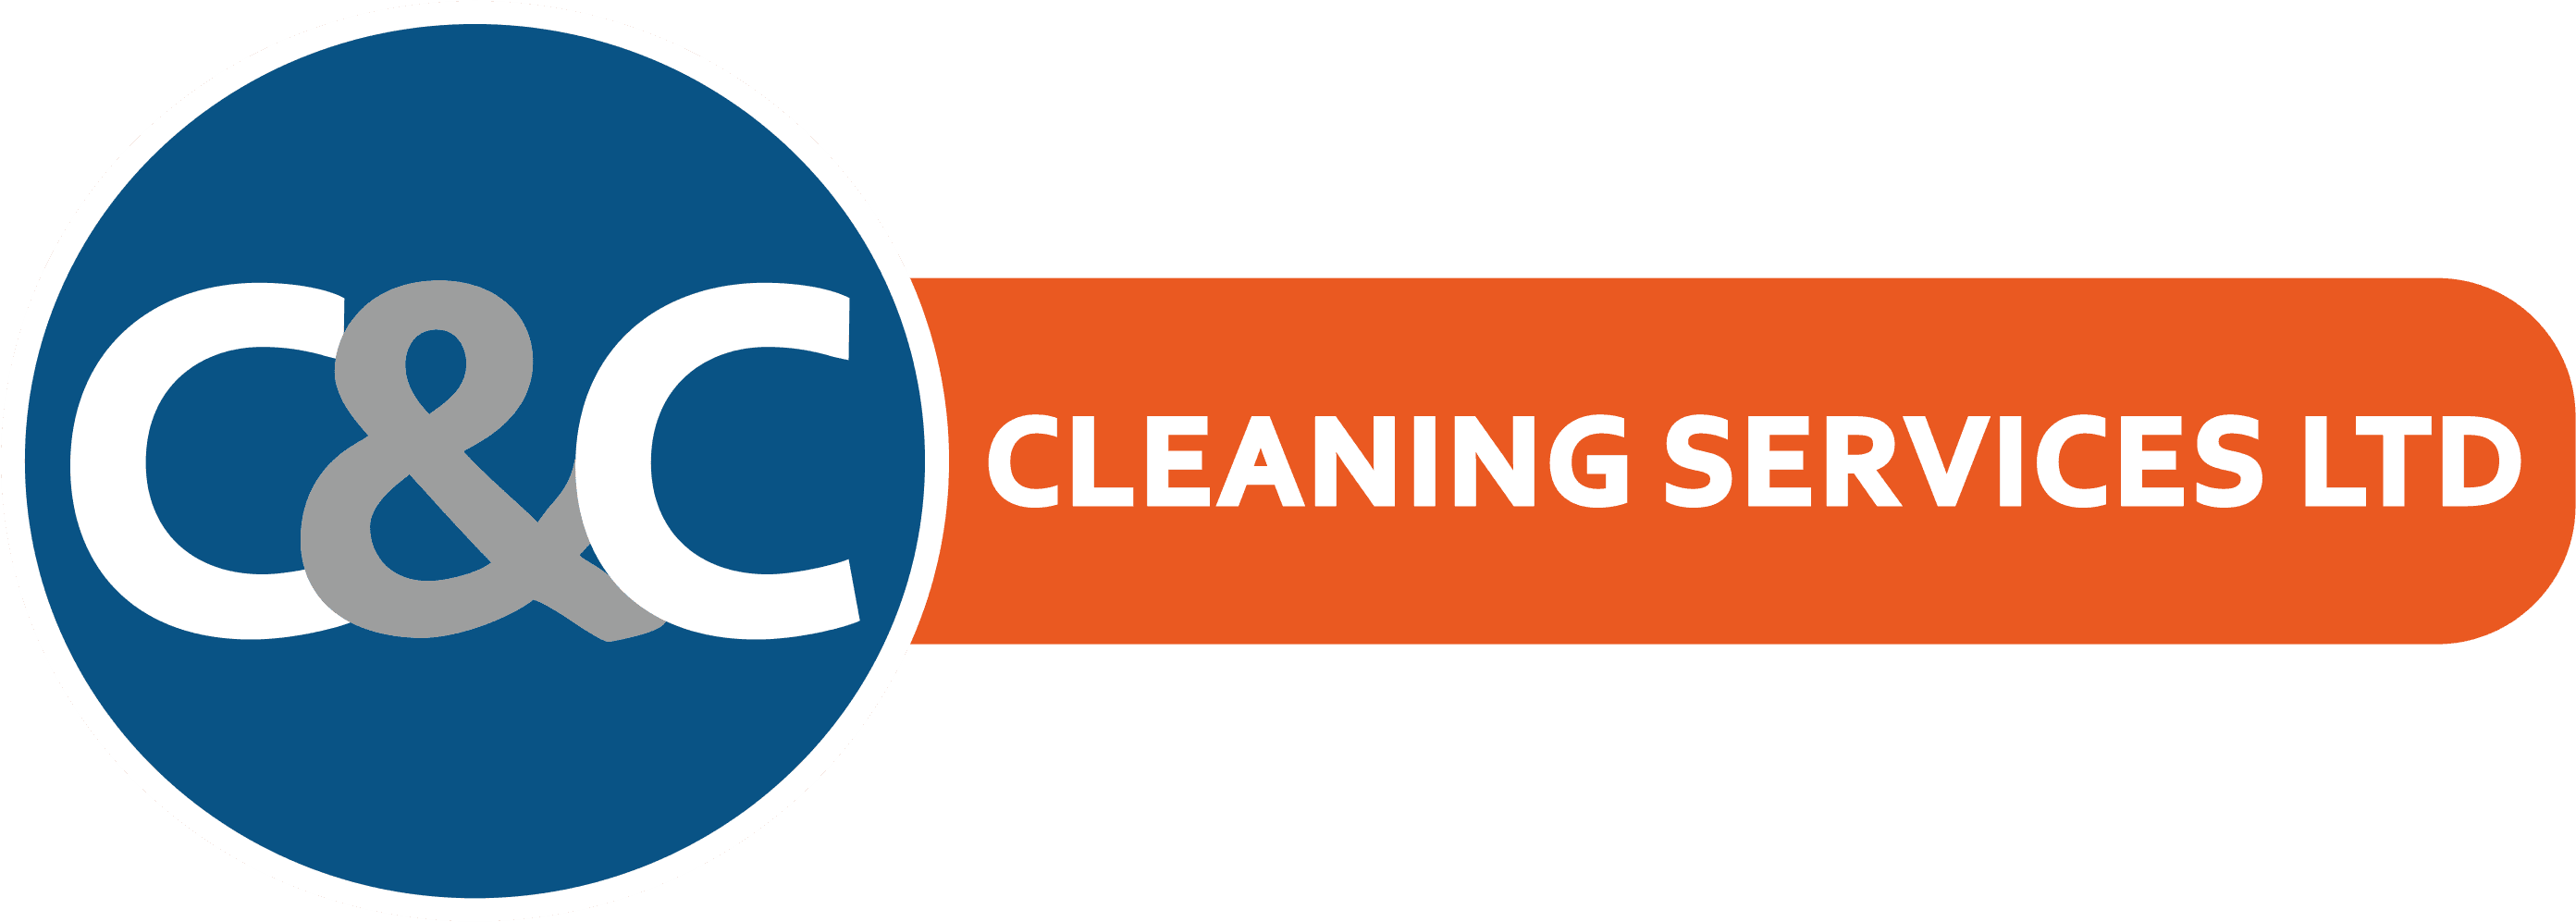 C & C Cleaning Services Ltd logo